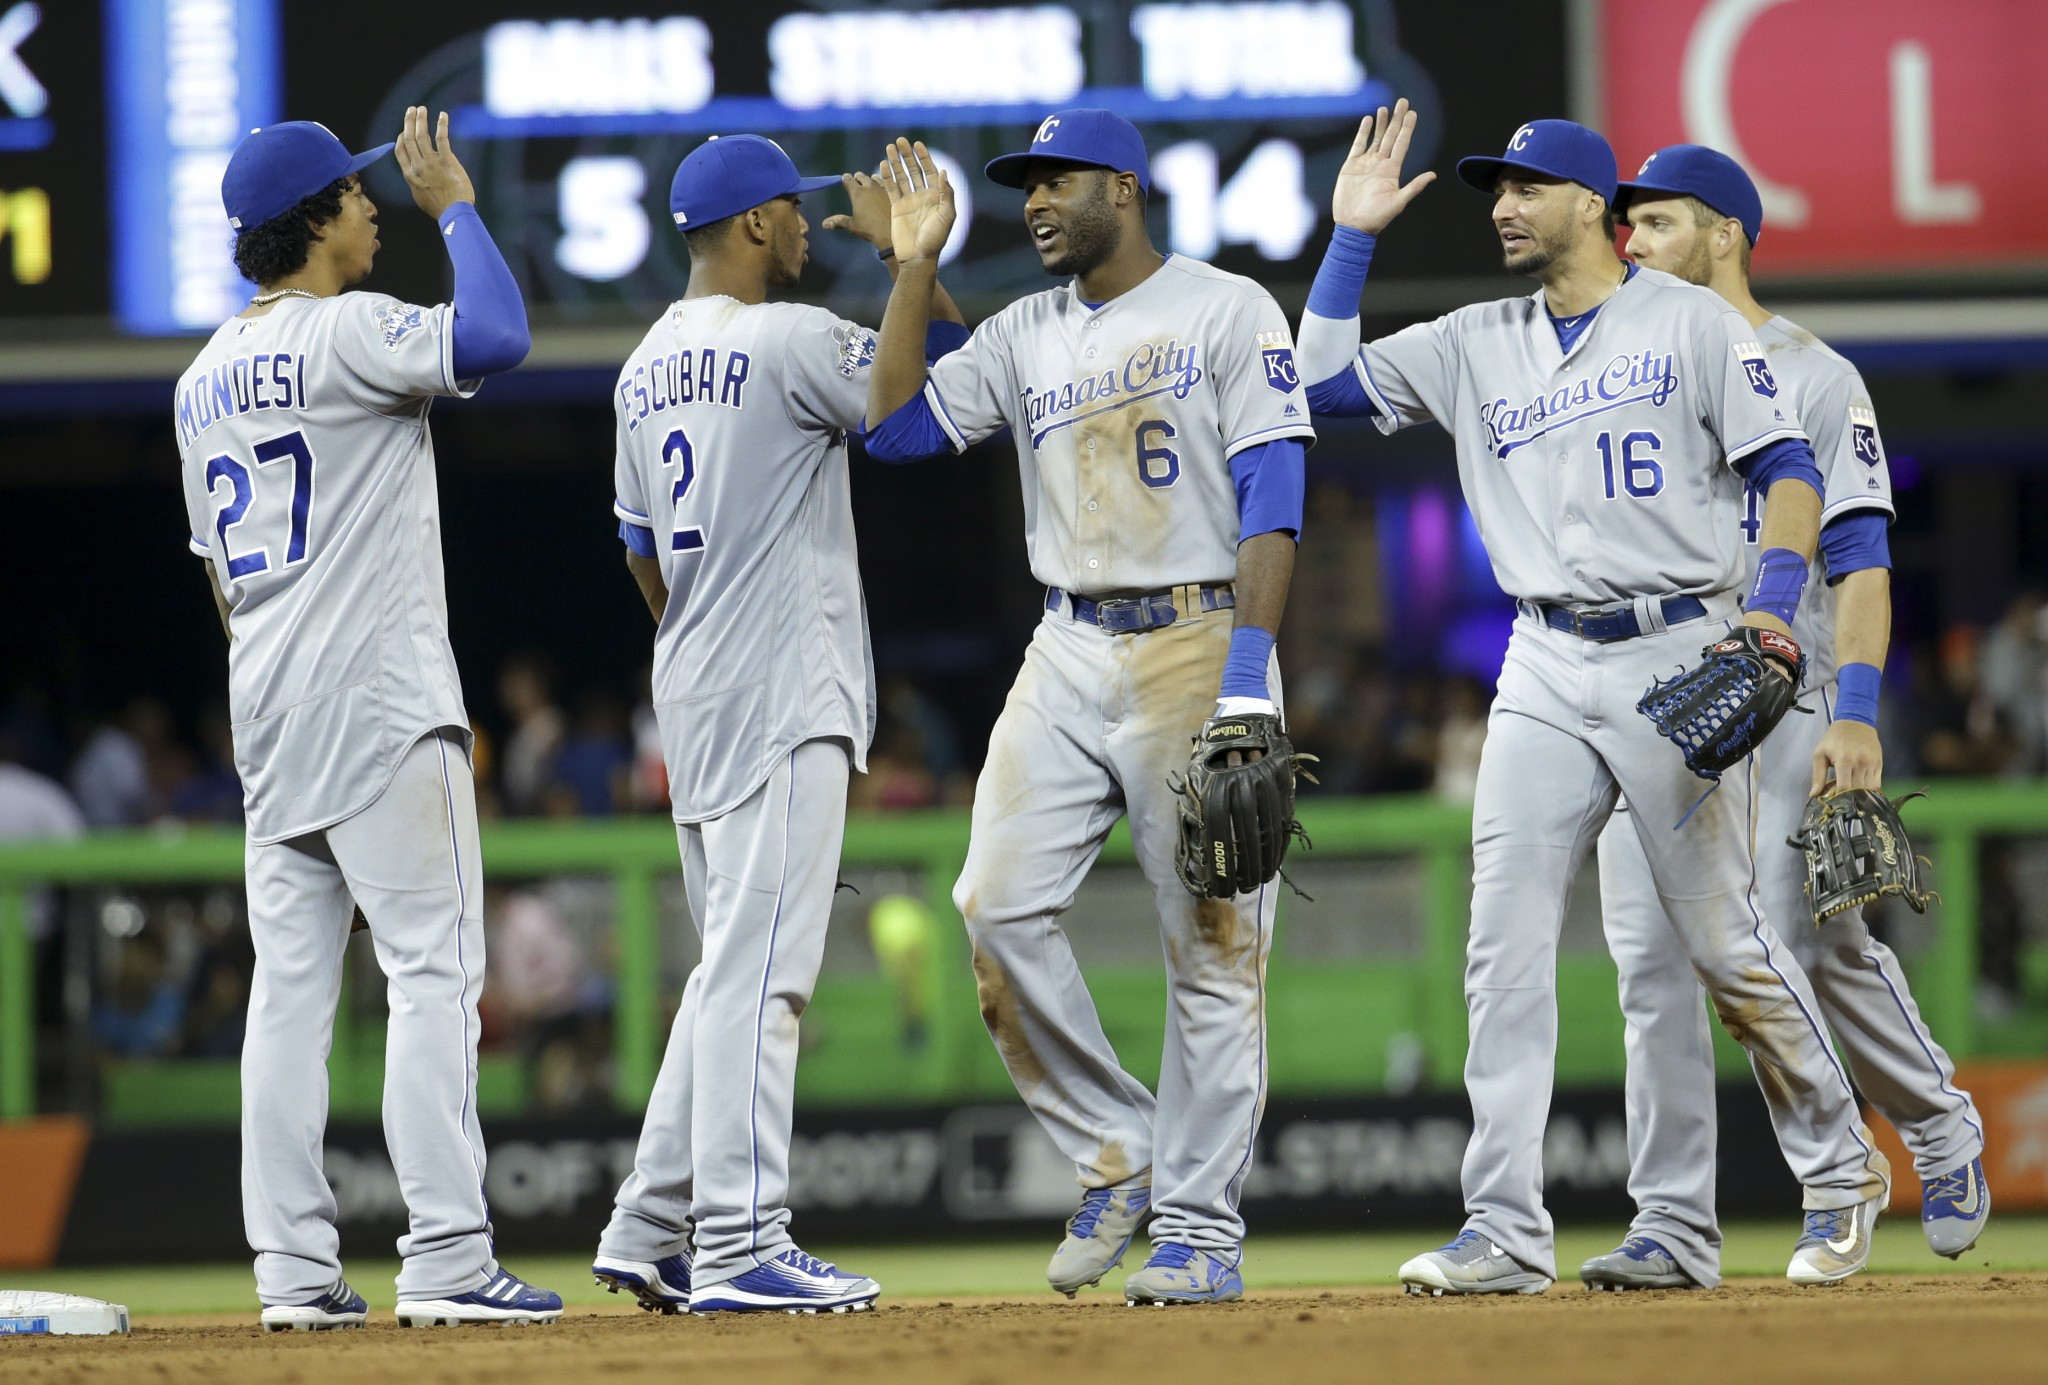 Watch Live: Royals take on Marlins in Free Game of the Day